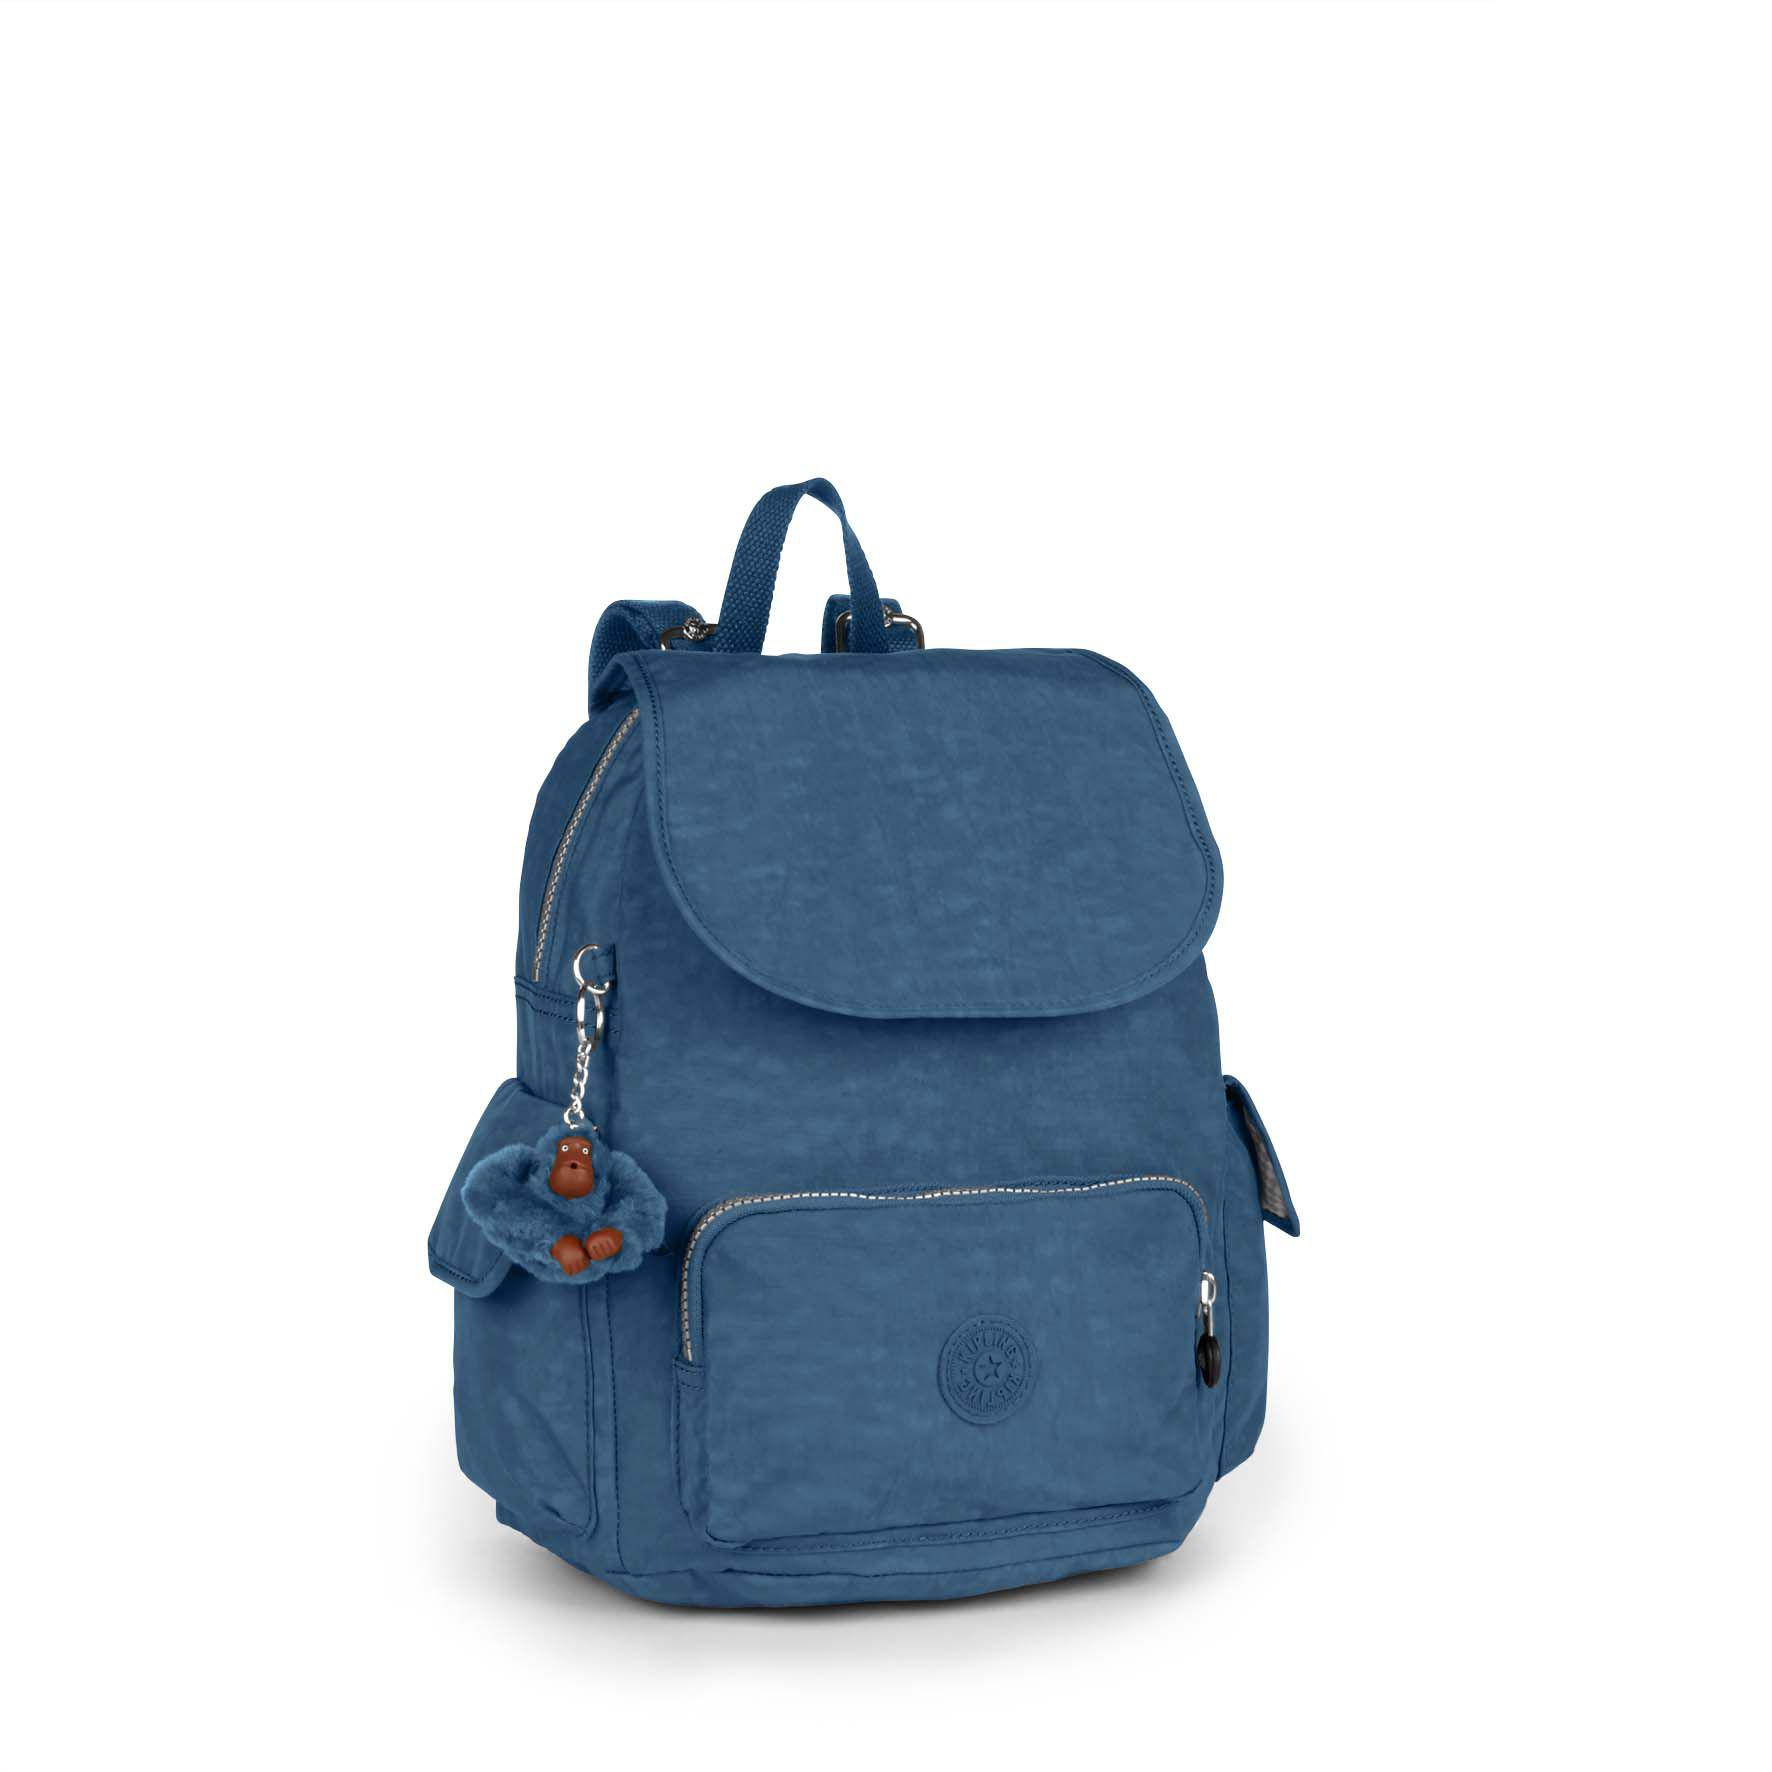 5e35ea3907 Kipling Superwork Working Bag in Blue - Lyst